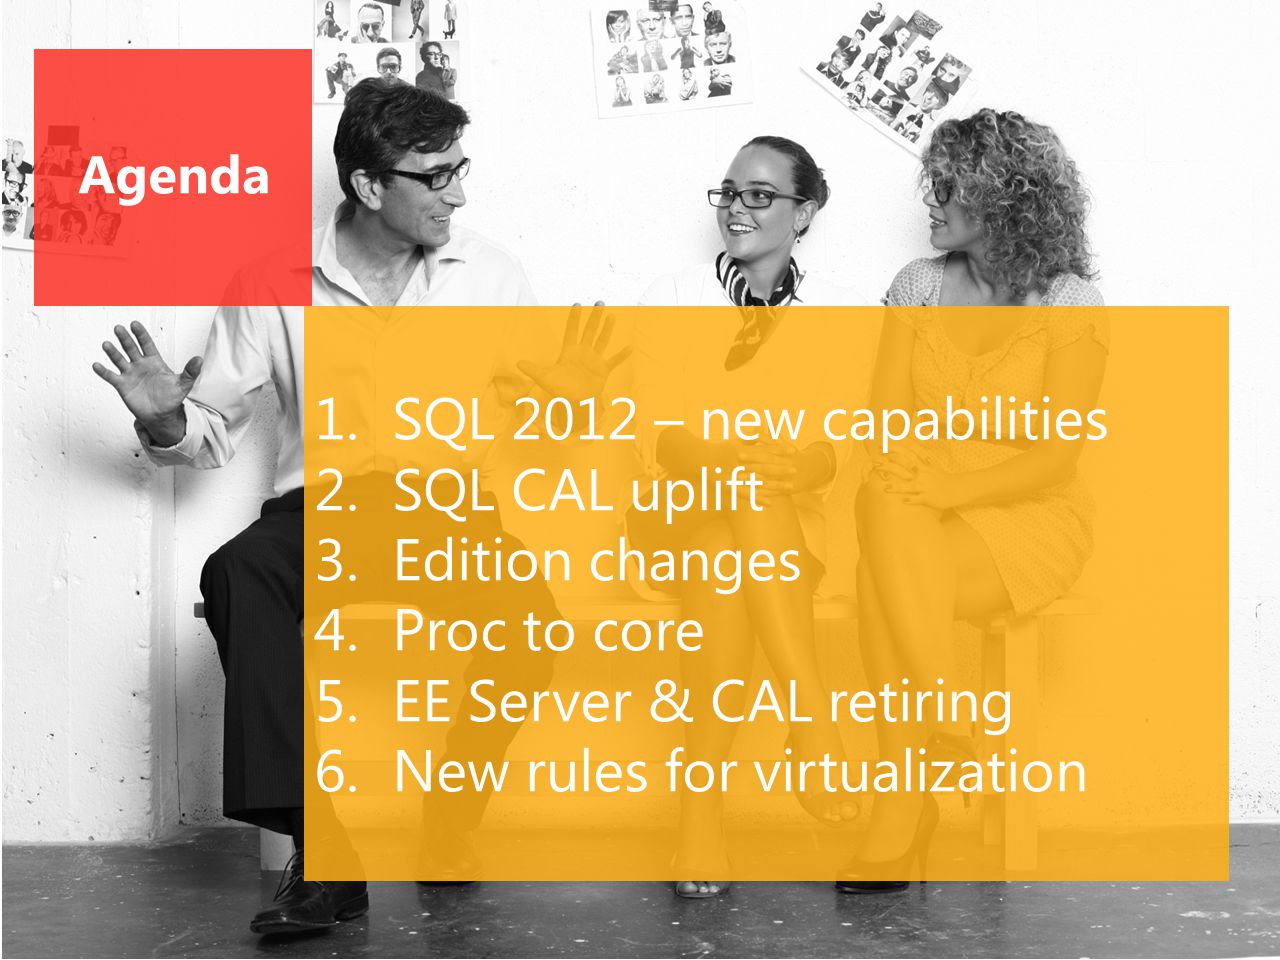 Agenda 1.SQL 2012 – new capabilities 2.SQL CAL uplift 3.Edition changes 4.Proc to core 5.EE Server & CAL retiring 6.New rules for virtualization